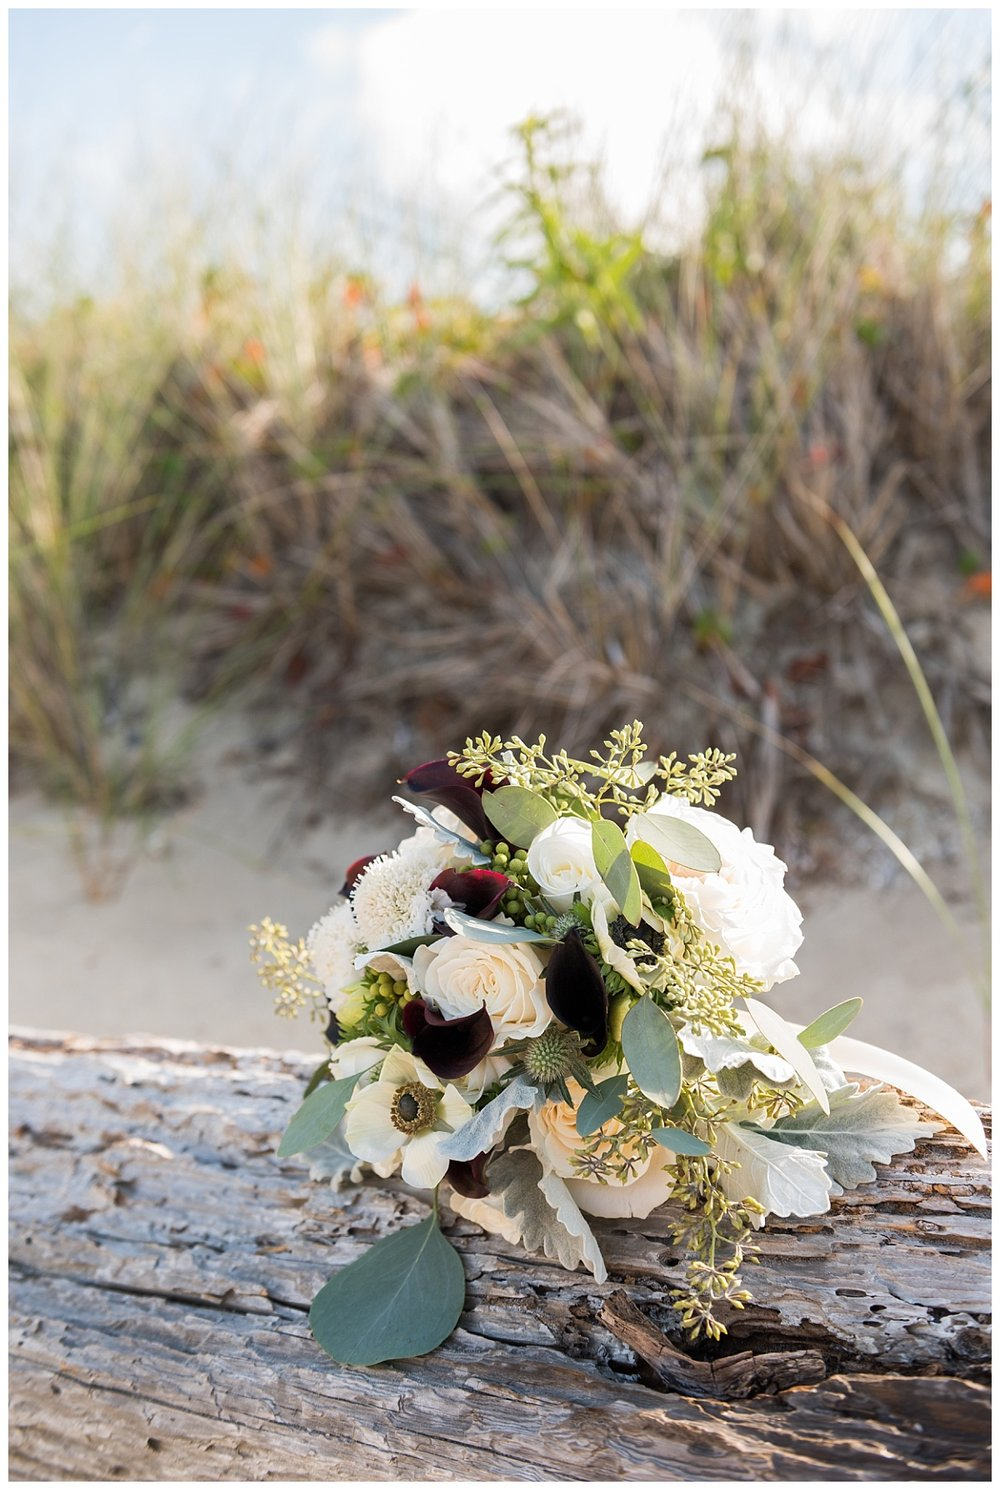 A Beautiful Intimate Elopement at the Nantucket Brant Point Lighthouse